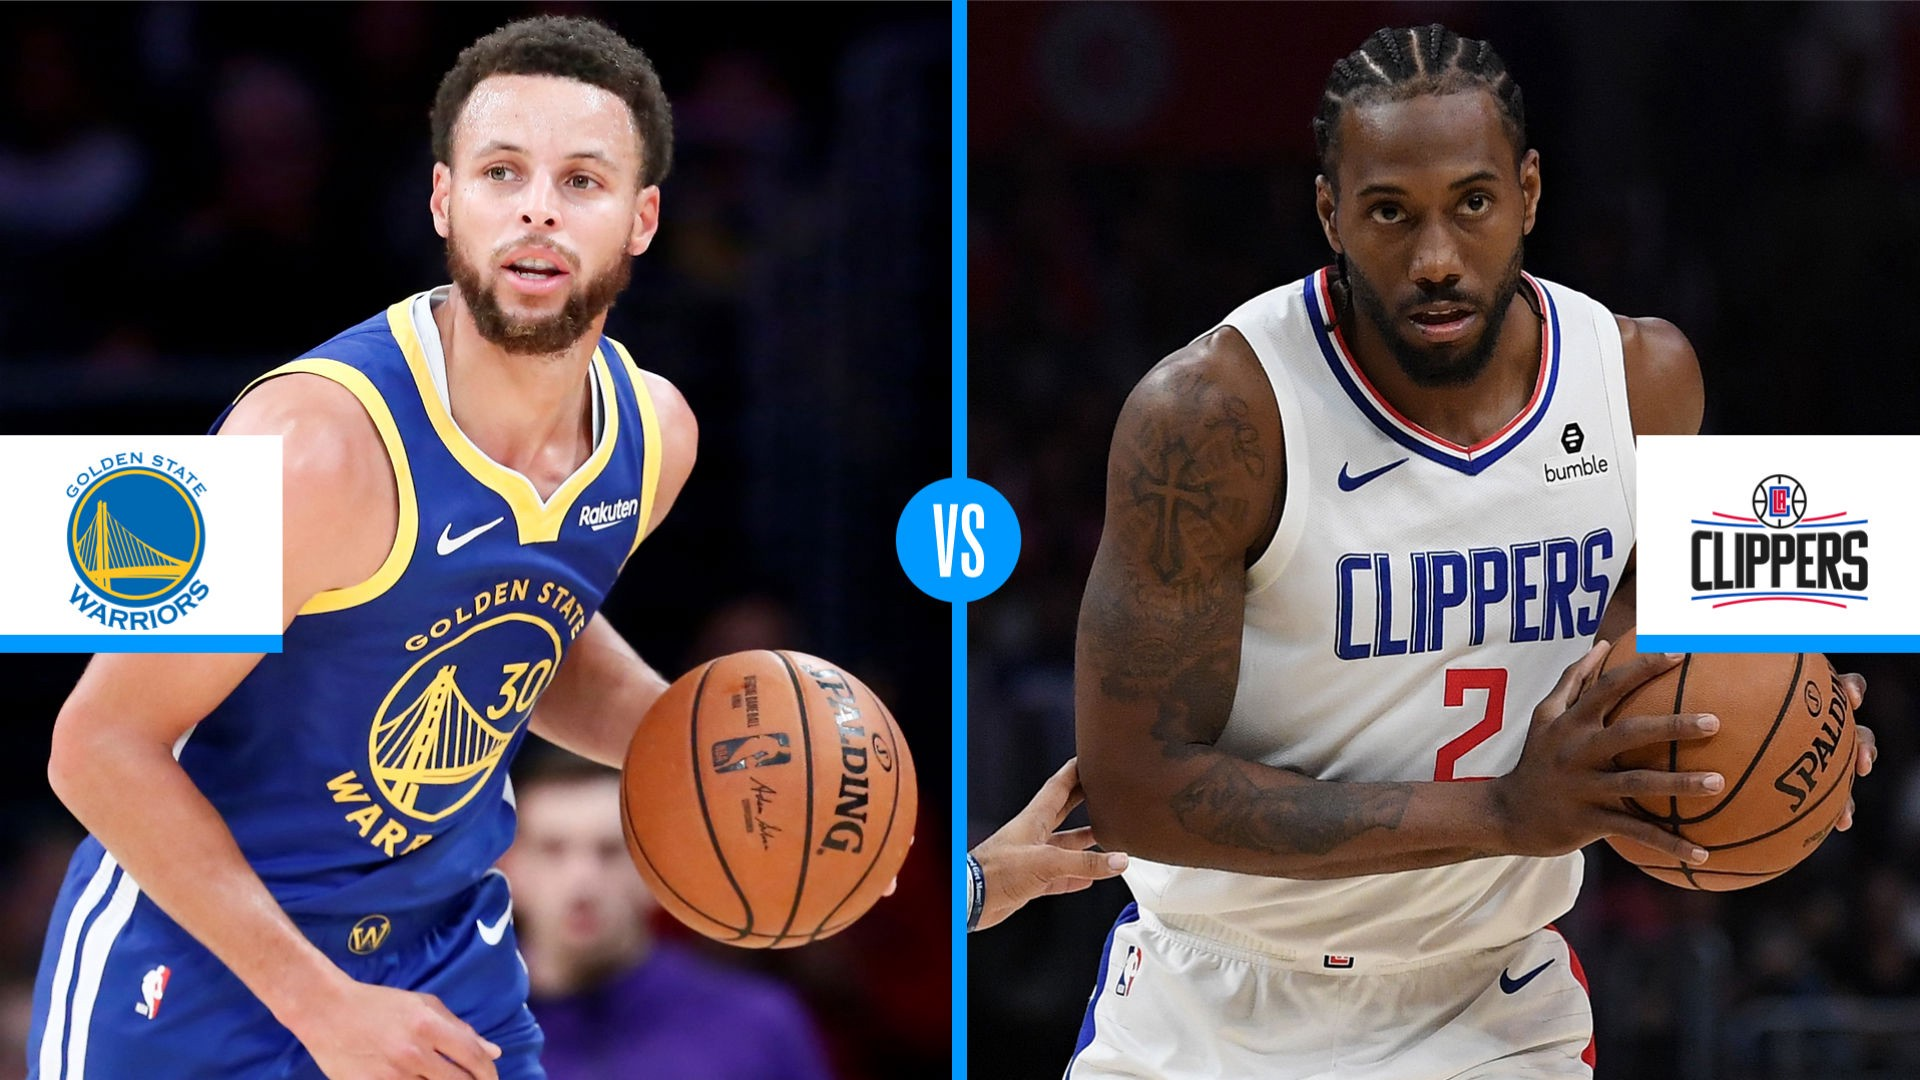 NBA Basketball: Los Angeles Clippers vs Golden State Warriors Live Stream Online   by Sky Sports 7   Medium